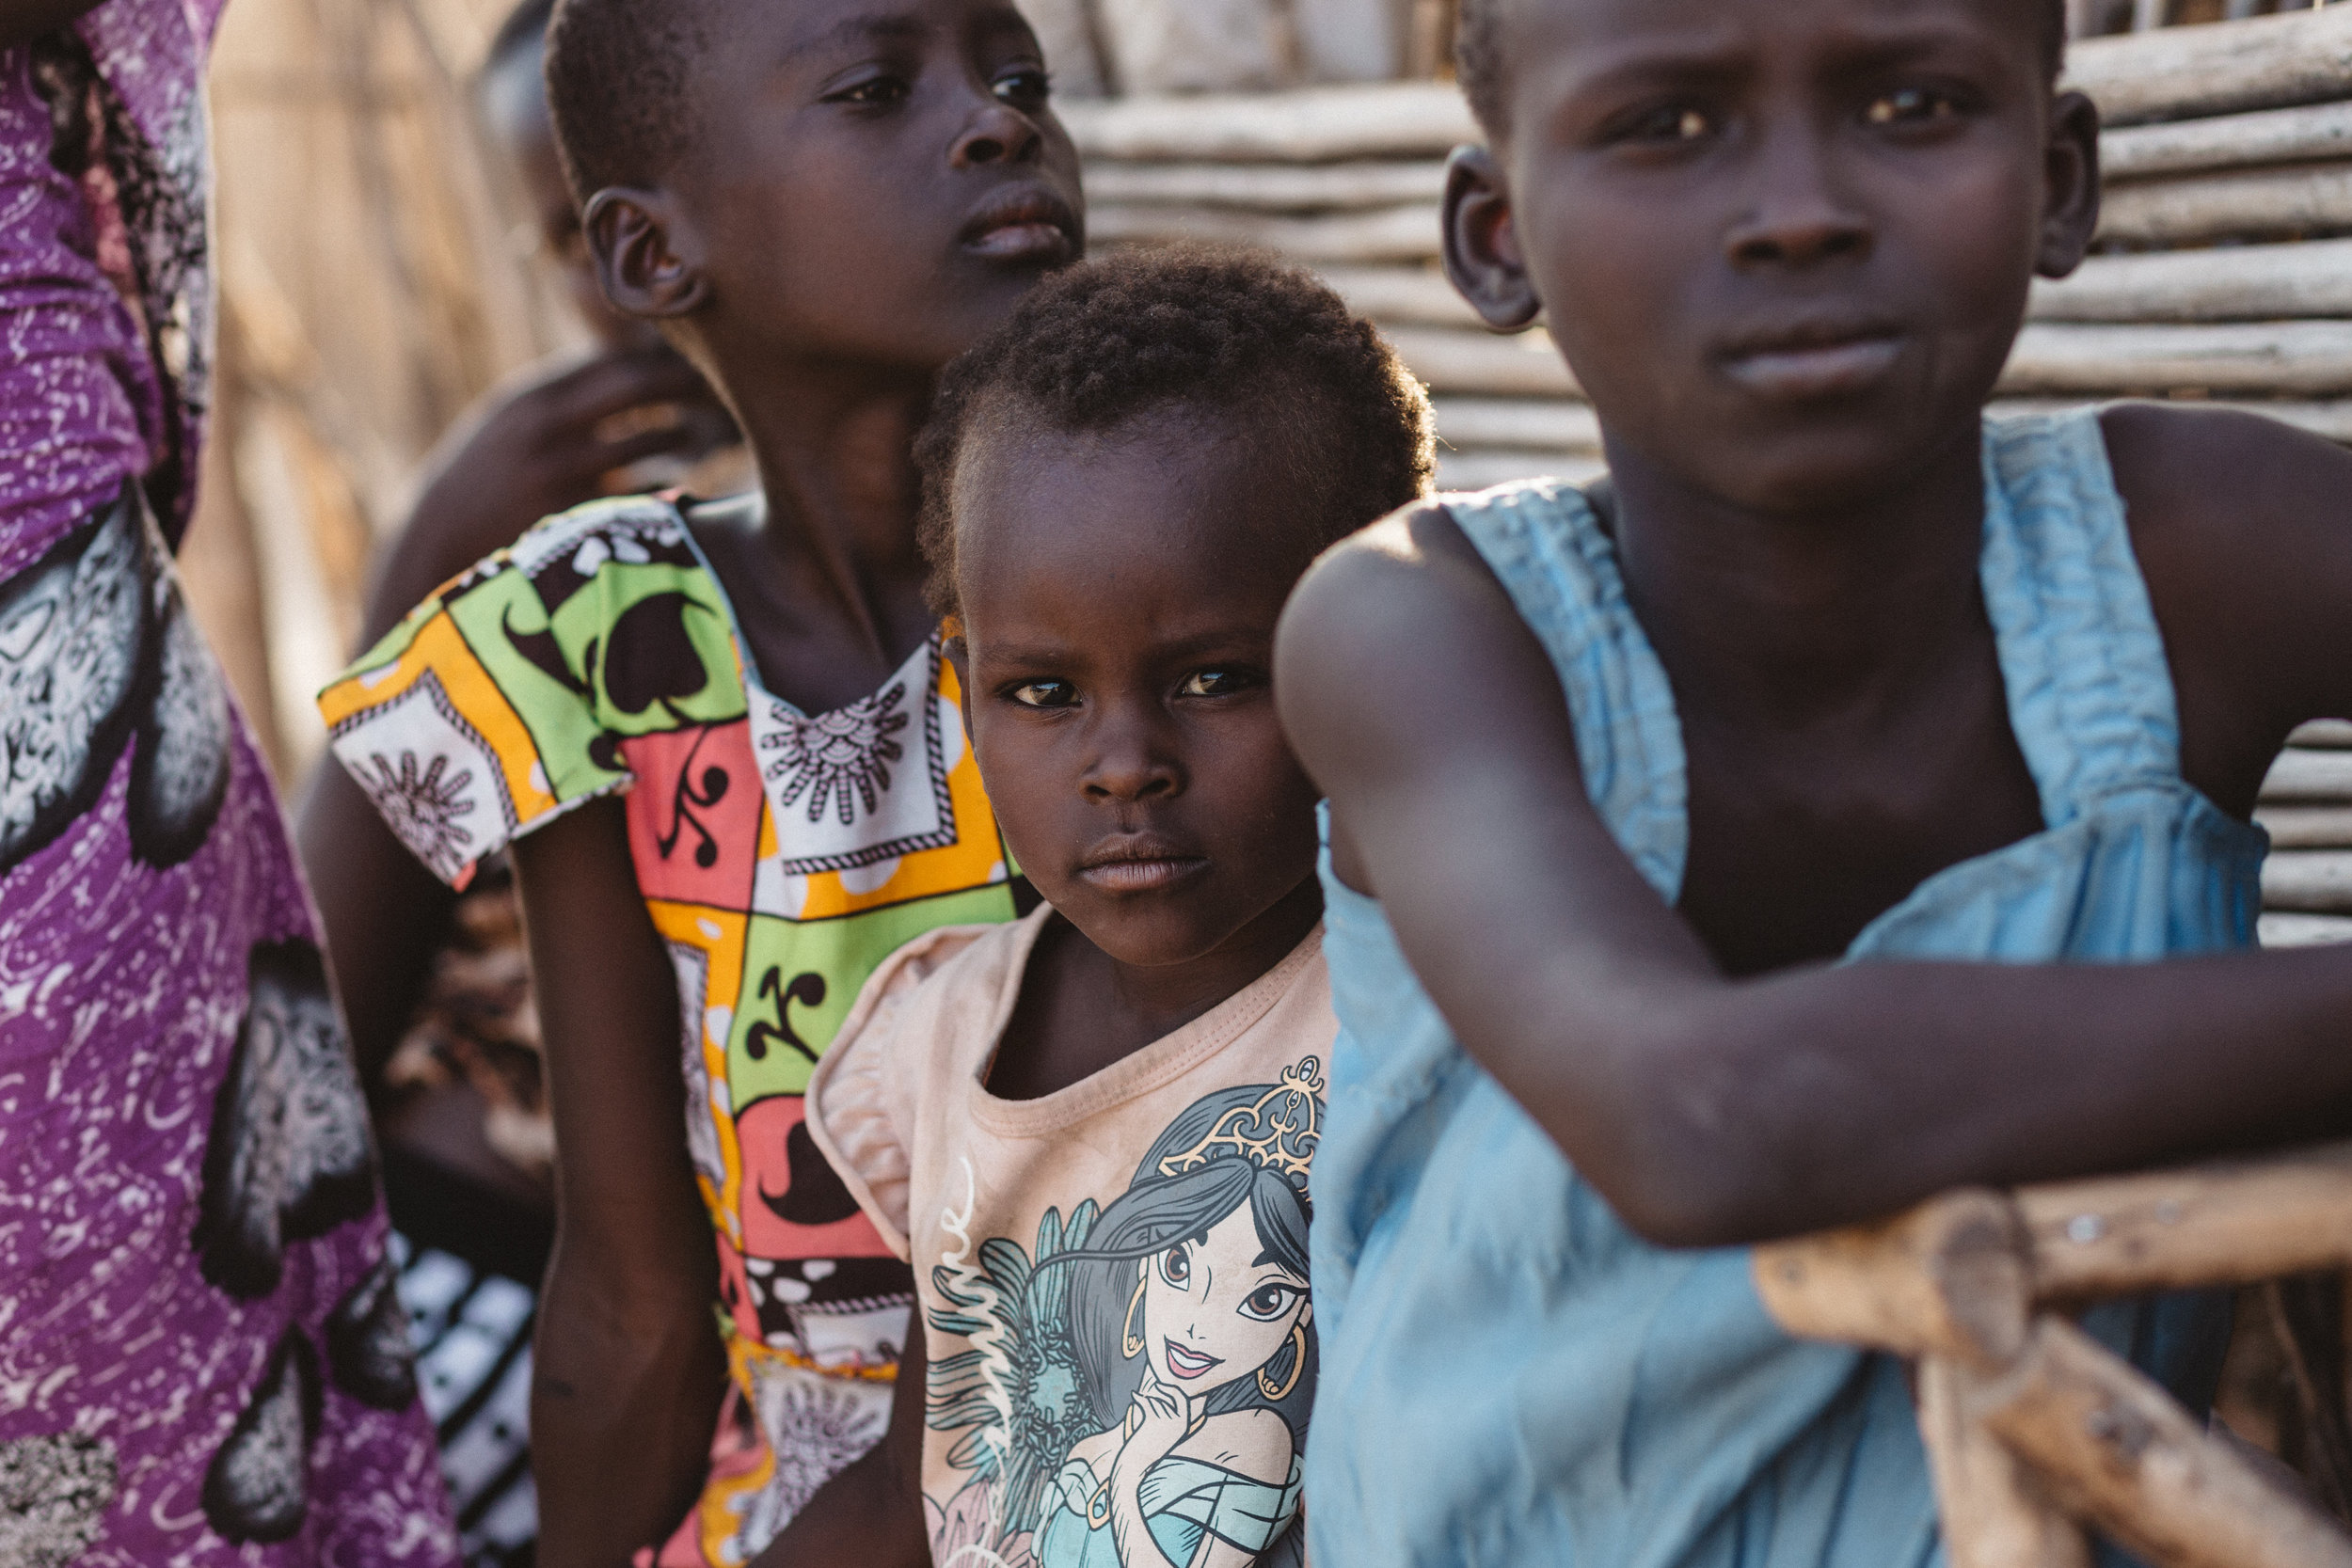 Daniel's parents died when he was born, so he now lives with his step-parents and eleven step-siblings in Turkana.